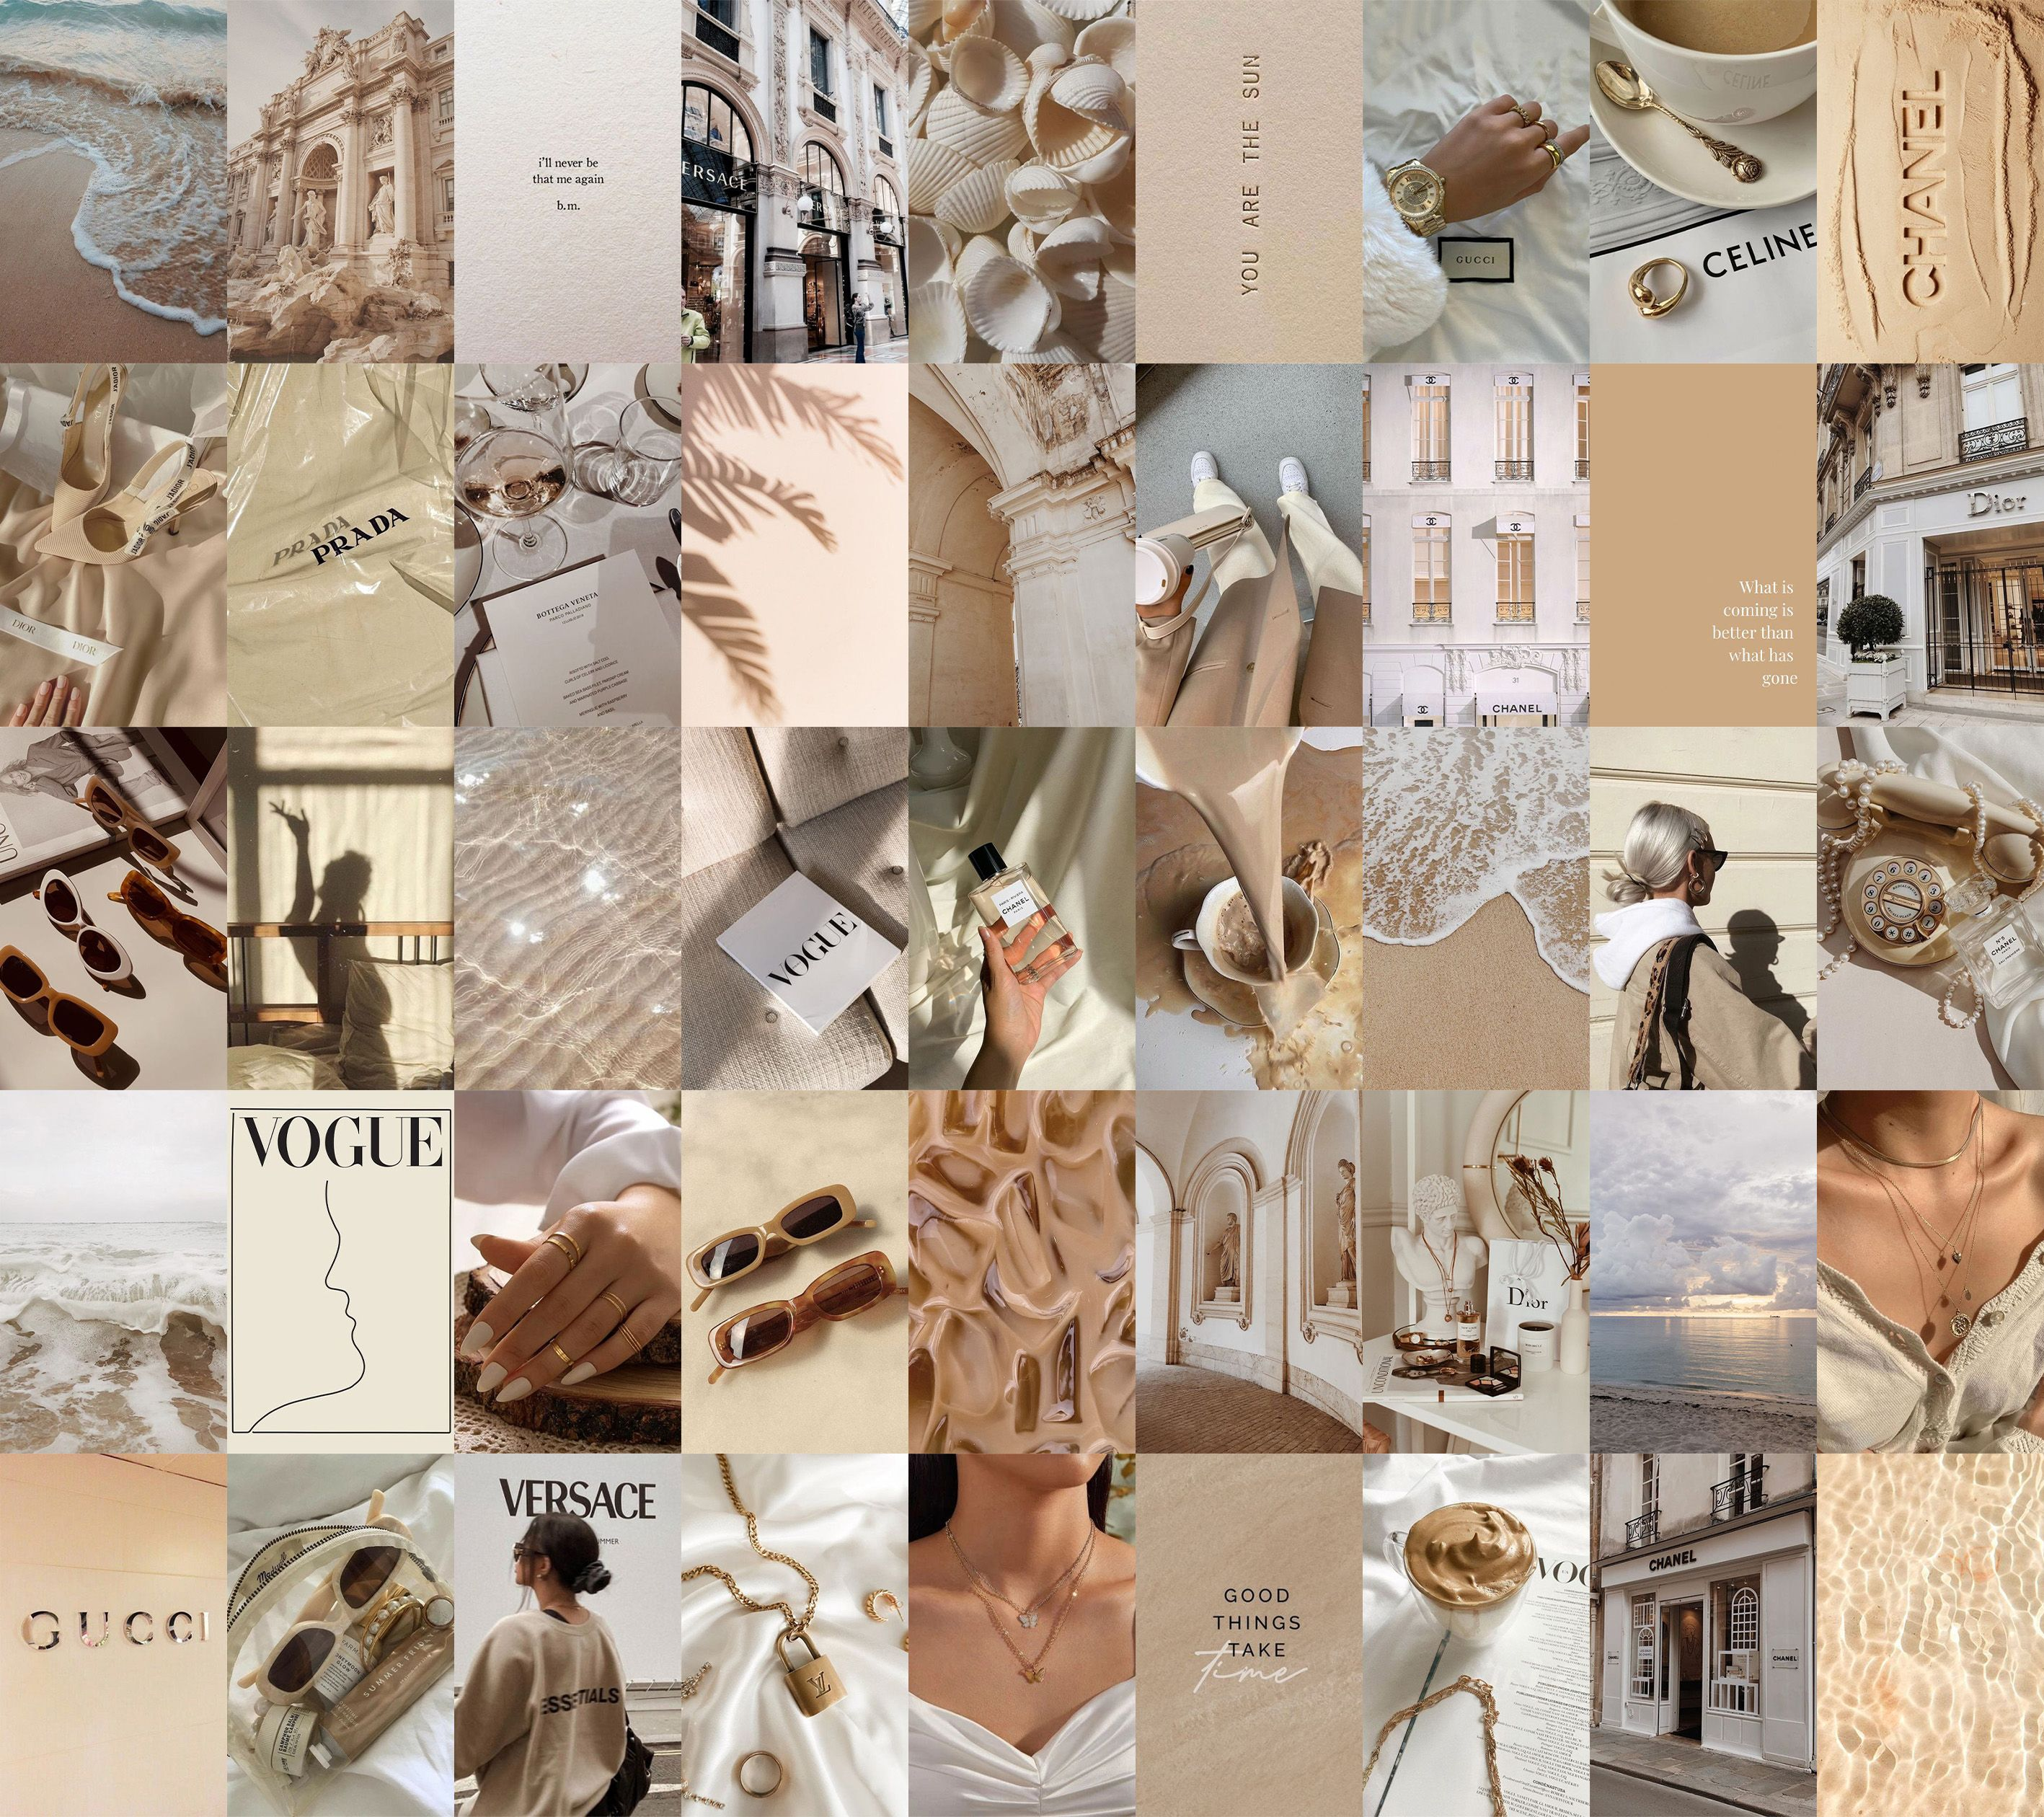 Boujee Aesthetic Beige Wall Collage Kit Digital Download Etsy In 2021 Wall Collage Decor Wall Collage Wall Collage Kit Download aesthetic room colors